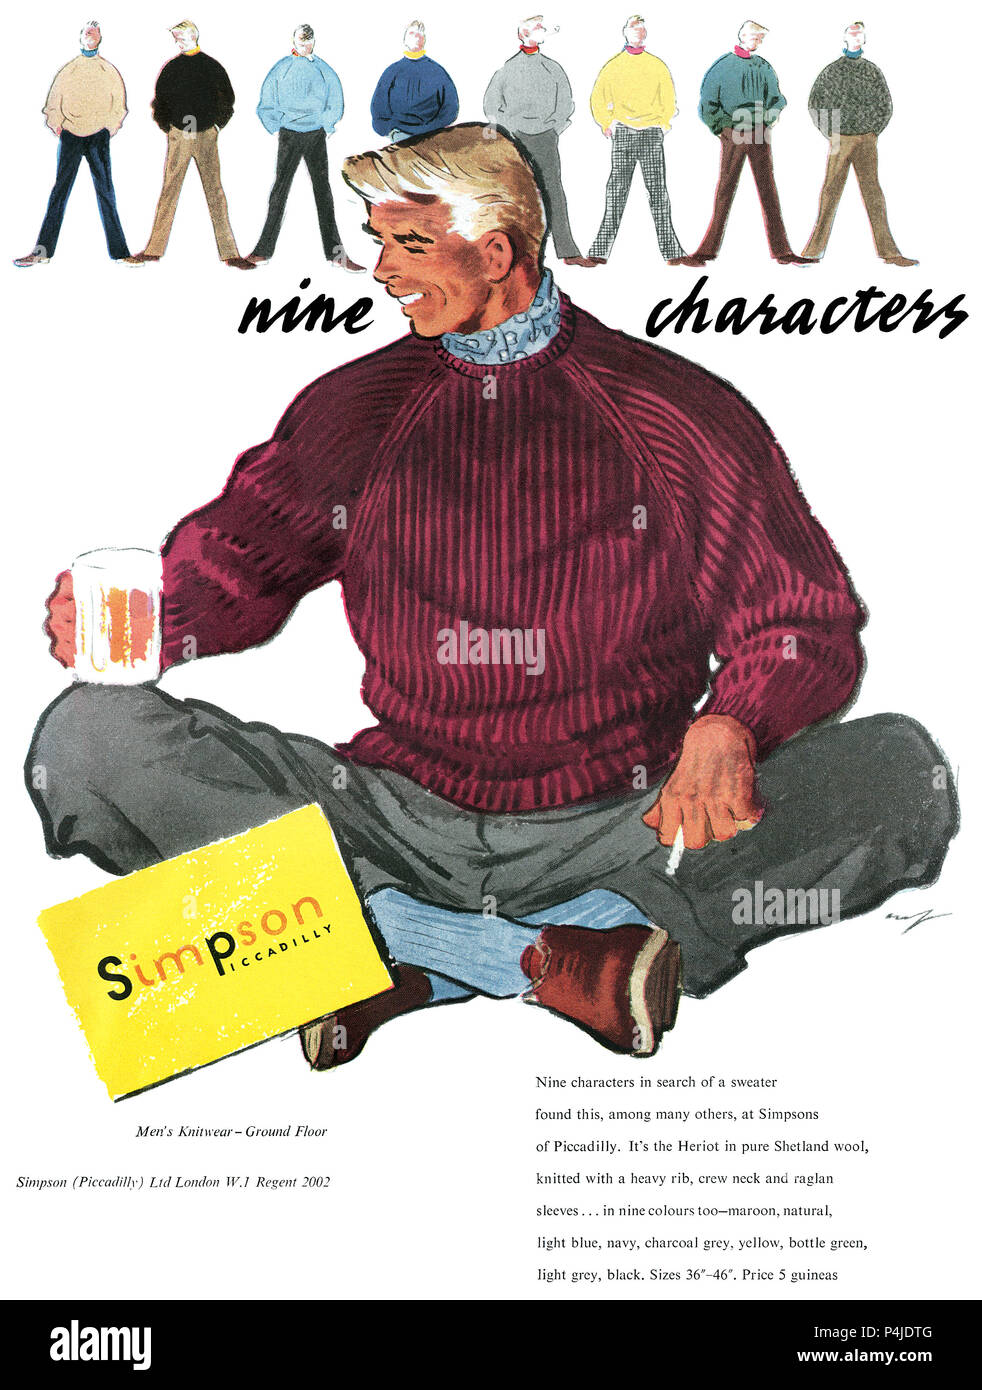 1955 British advertisement for Simpsons of Piccadilly menswear. - Stock Image